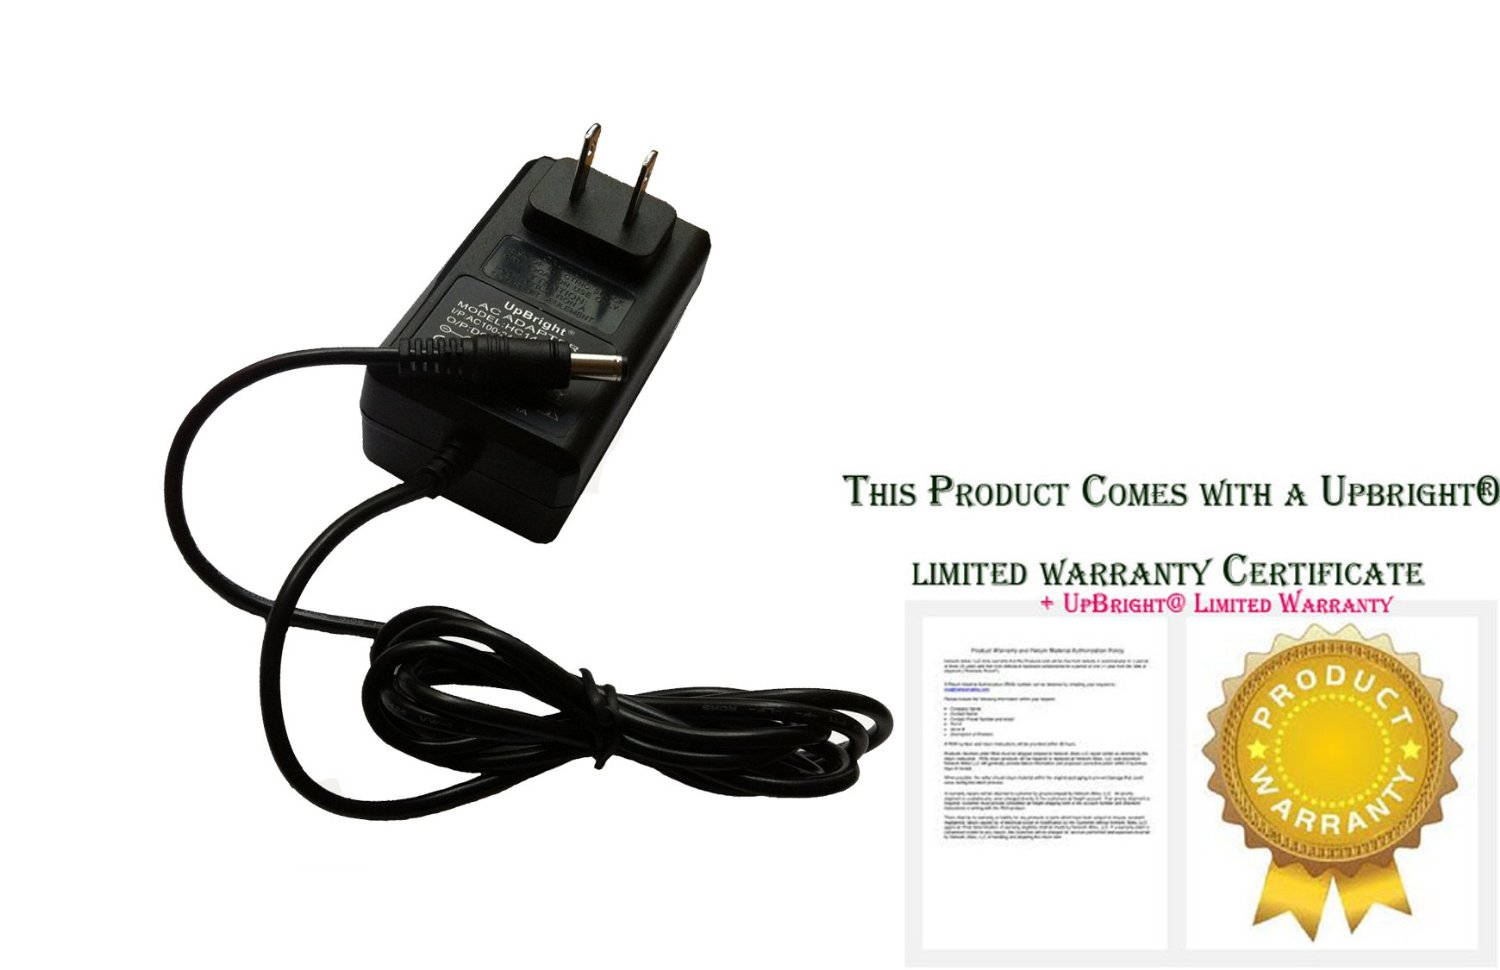 UpBright NEW Global 12V AC / DC Adapter For Toshiba SD-P1000 SD-P1200 SDP1000 SDP1200 Portable DVD Player 12VDC Power Supply Cord Cable Charger Mains PSU Input: 100V - 120V AC - 240 VAC 50/60Hz Worldwide Voltage Use Mains PSU (with Barrel Round Plug Tip. NOT 15V 2-Prong Connector. Please Check For